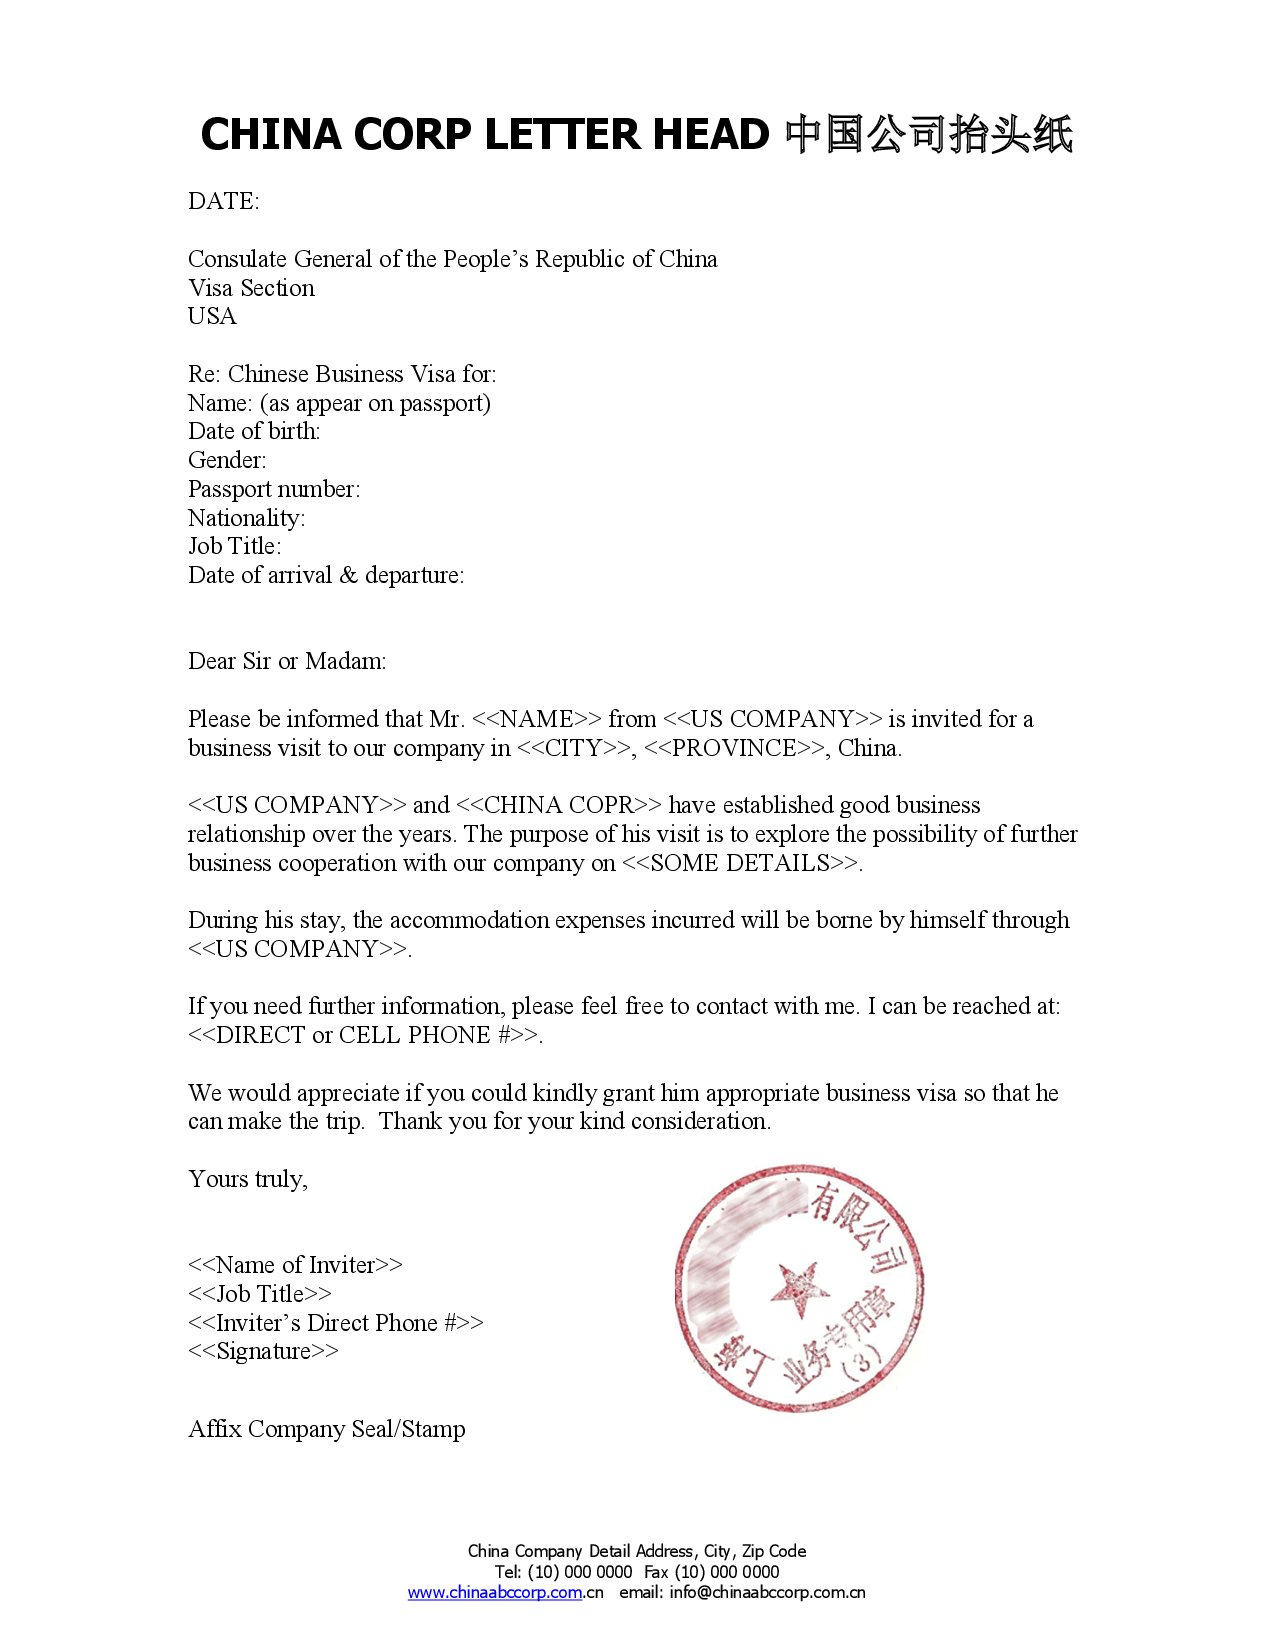 Format invitation letter for business visa to china lettervisa cover letter for job application embassy writing phd aploon home design resume madrichimfo Choice Image